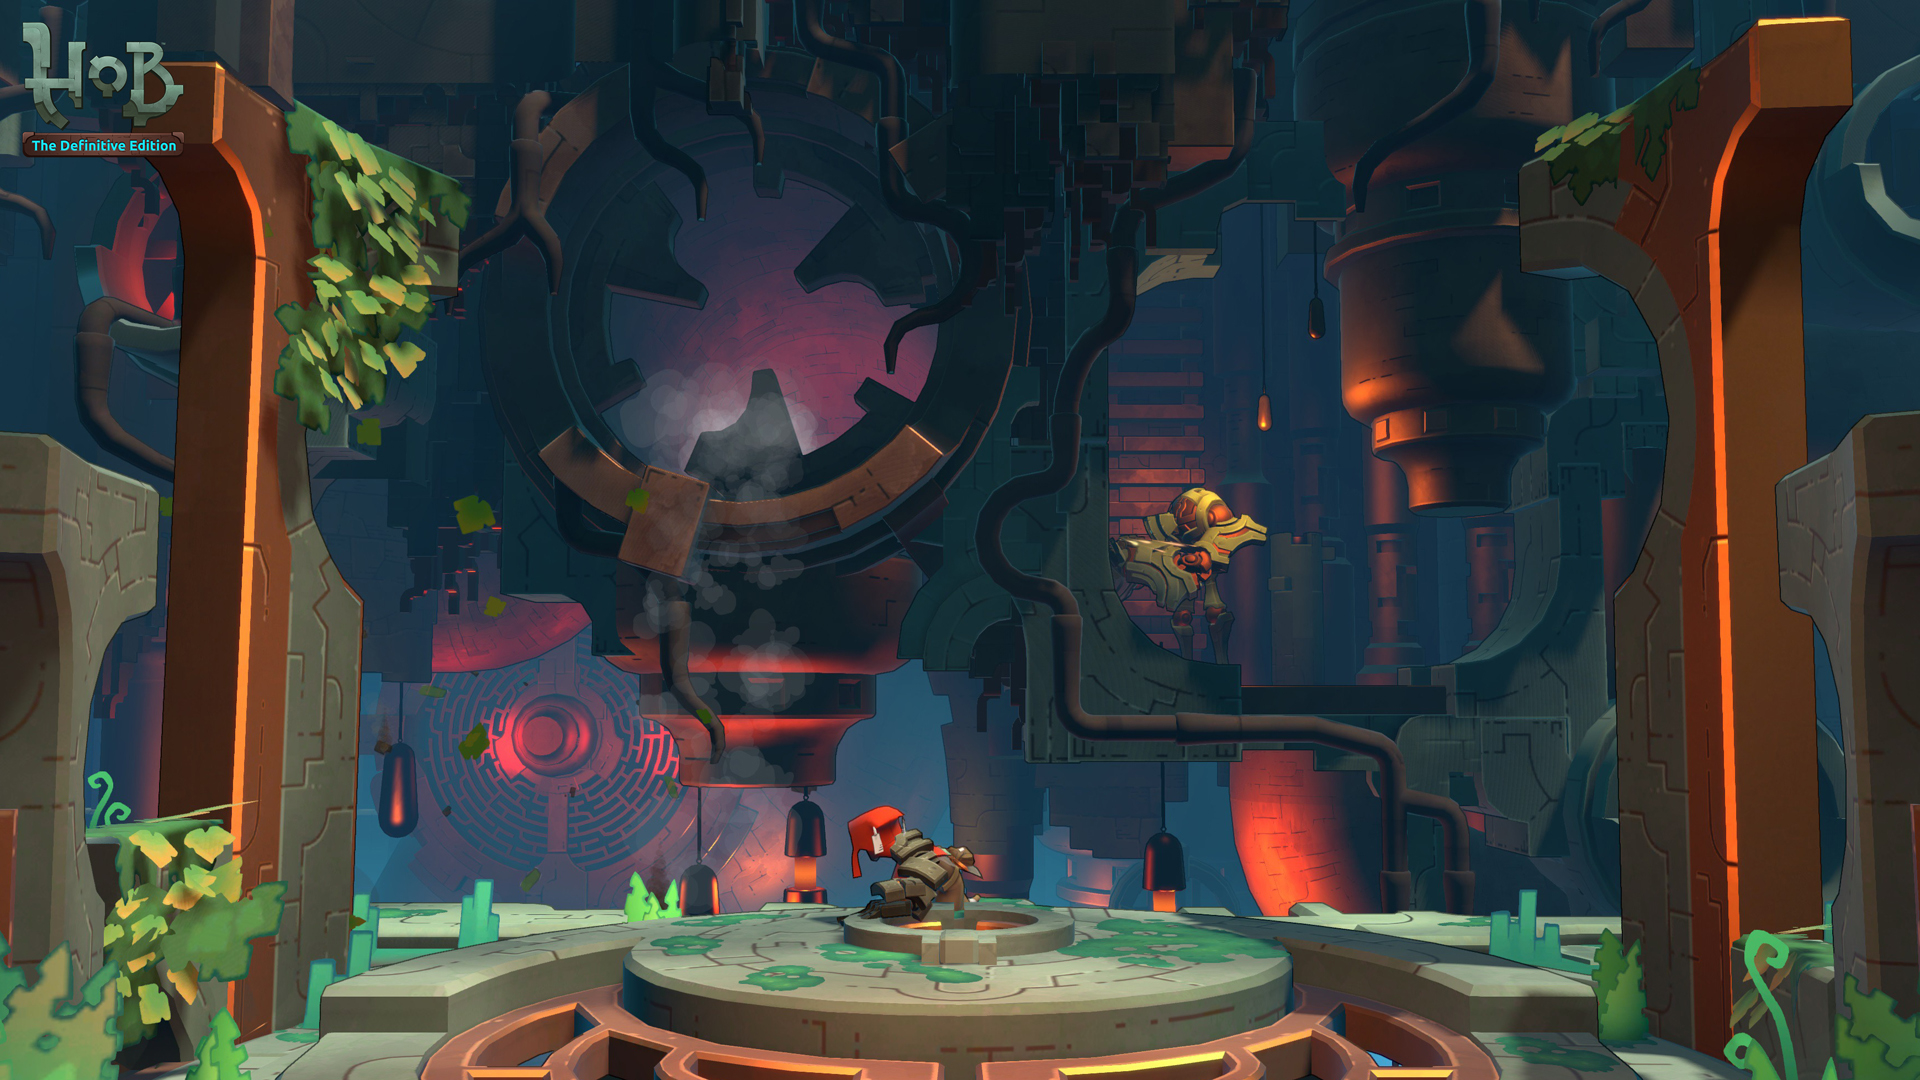 Hob: The Definitive Edition lands on Nintendo Switch Header Image